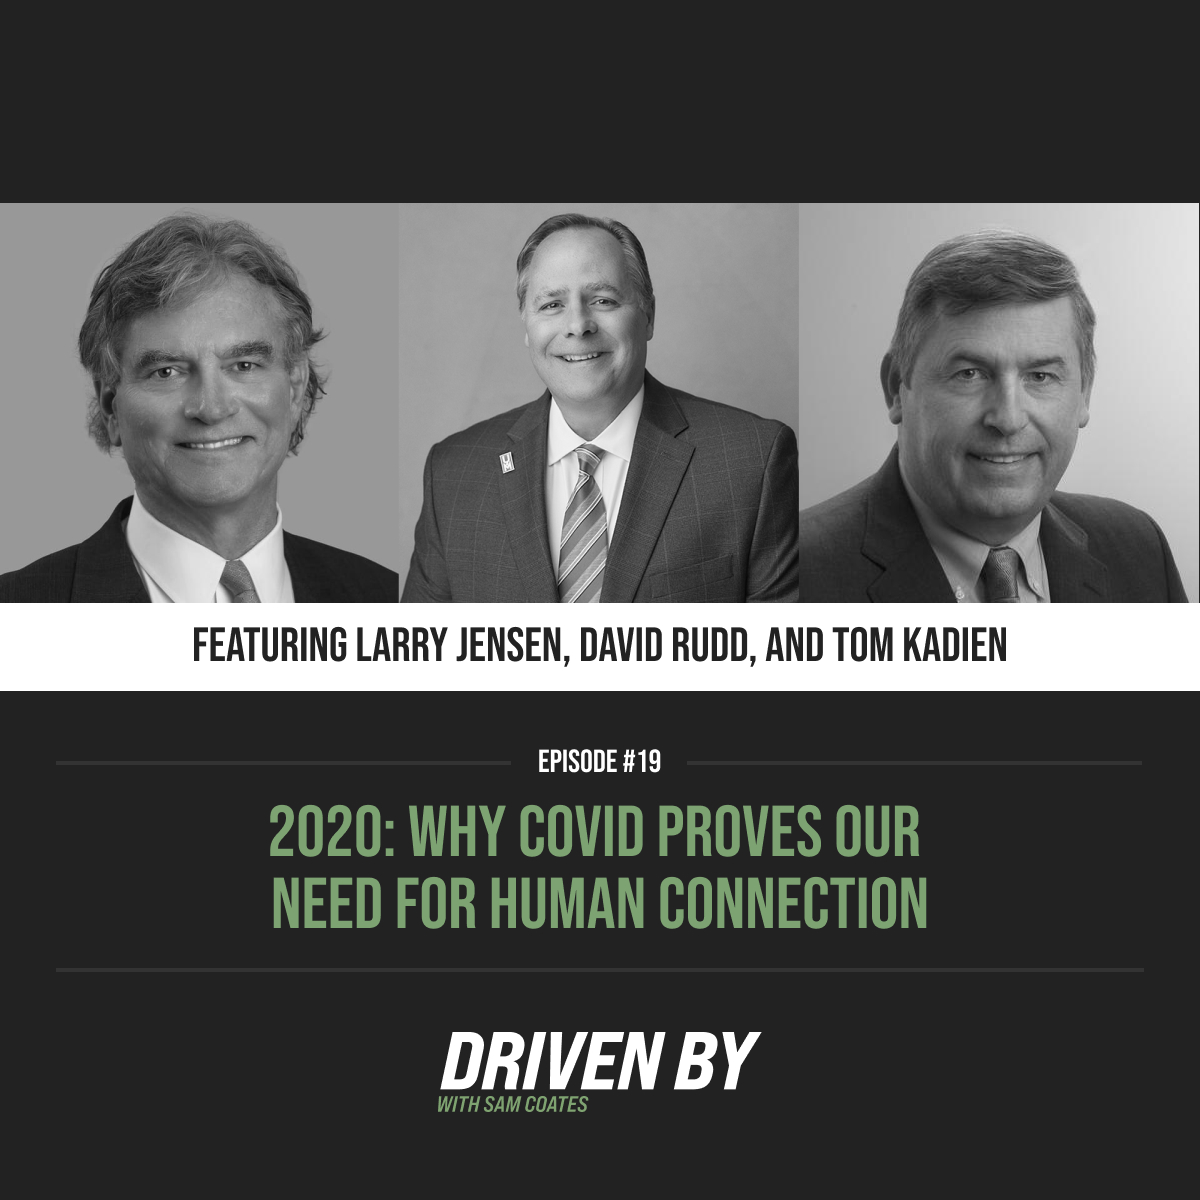 What Has 2020 Taught Us About Our Need for Human Connection?